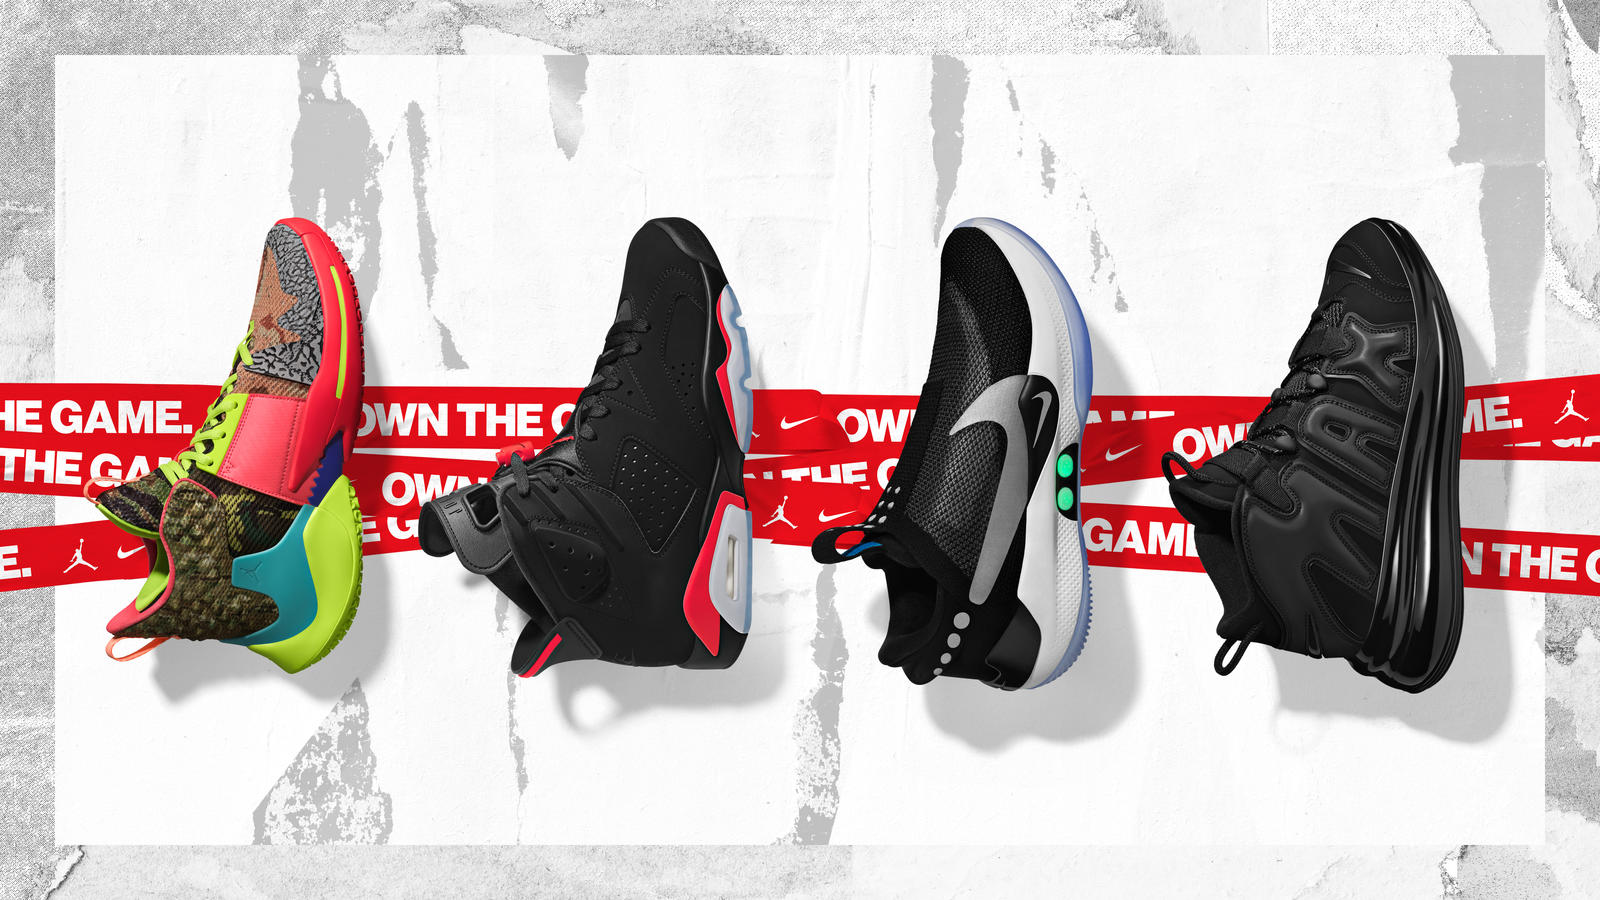 70a7faaaa9799 Nike and Jordan Brand s 2019 NBA All-Star Footwear Drops - Nike News